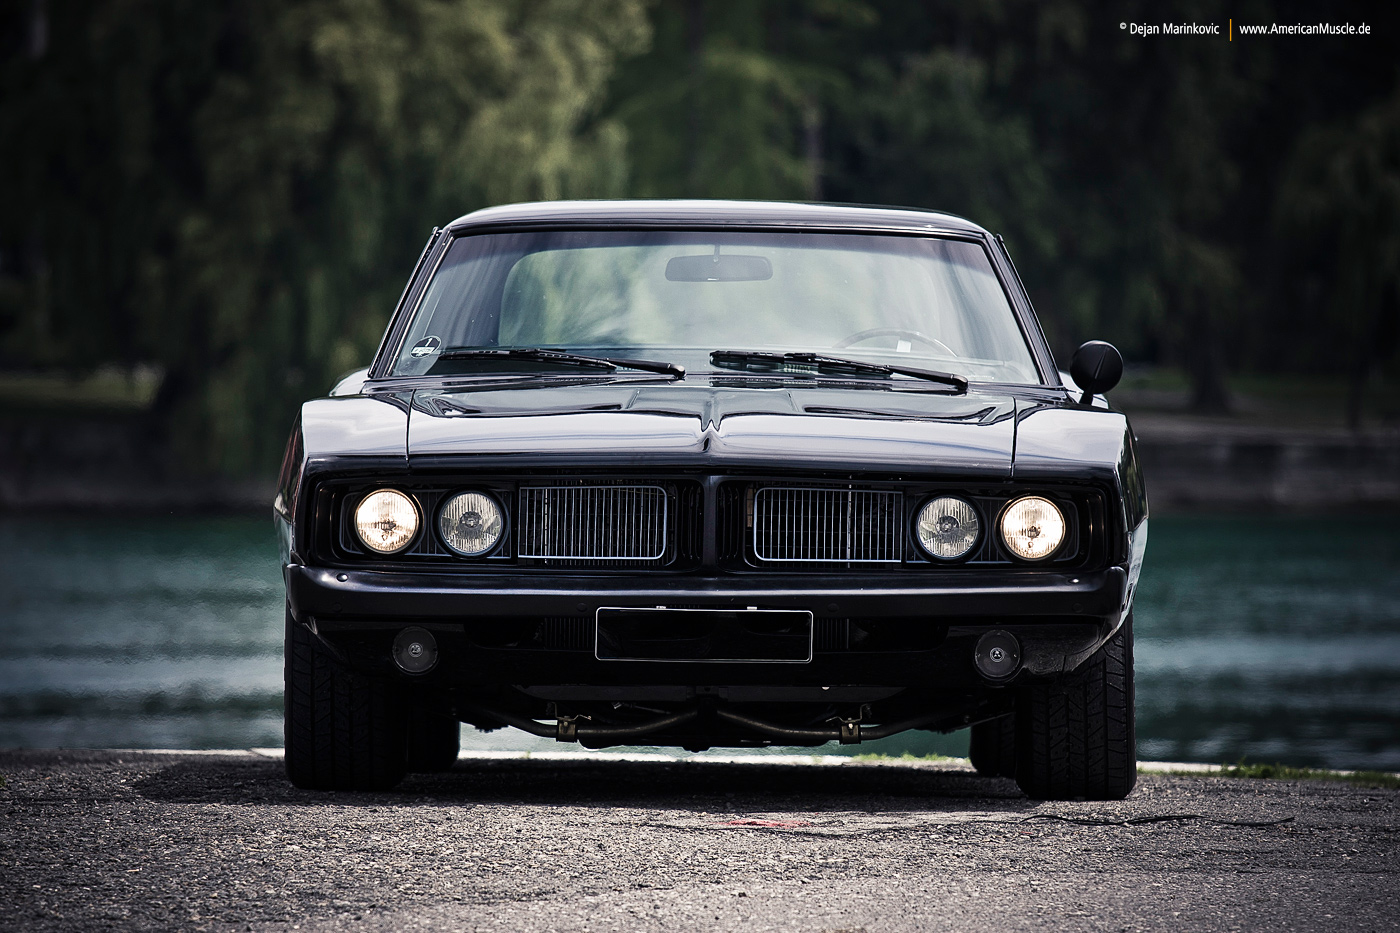 1969 dodge charger headlights wallpaper - photo #5